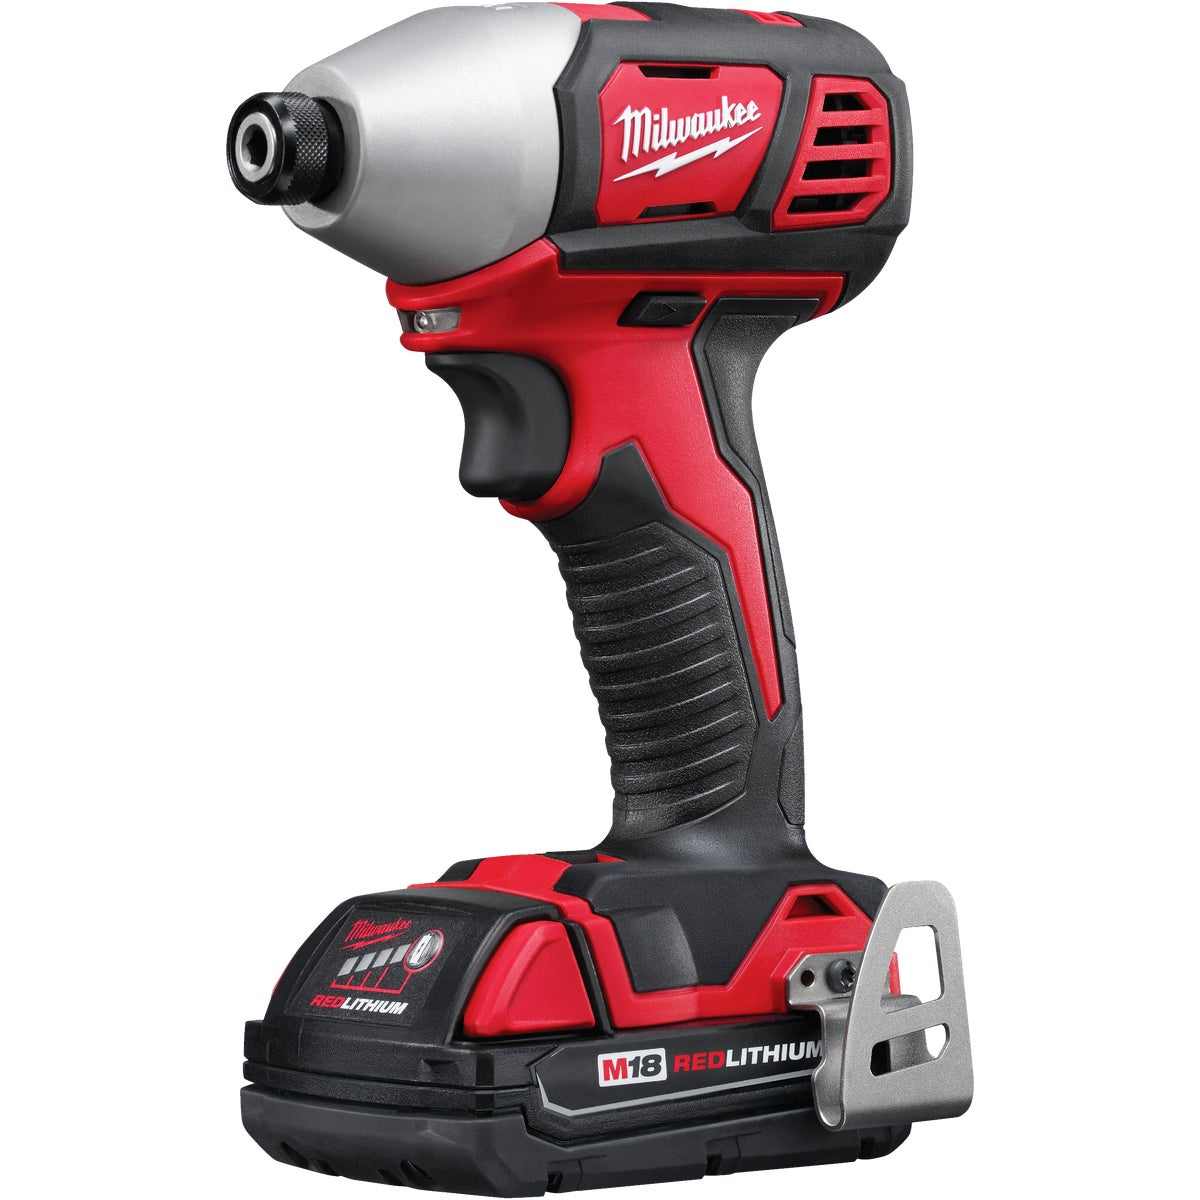 M18 LI-ION IMPACT DRIVER - 2657-22CT by Milwaukee Elec Tool